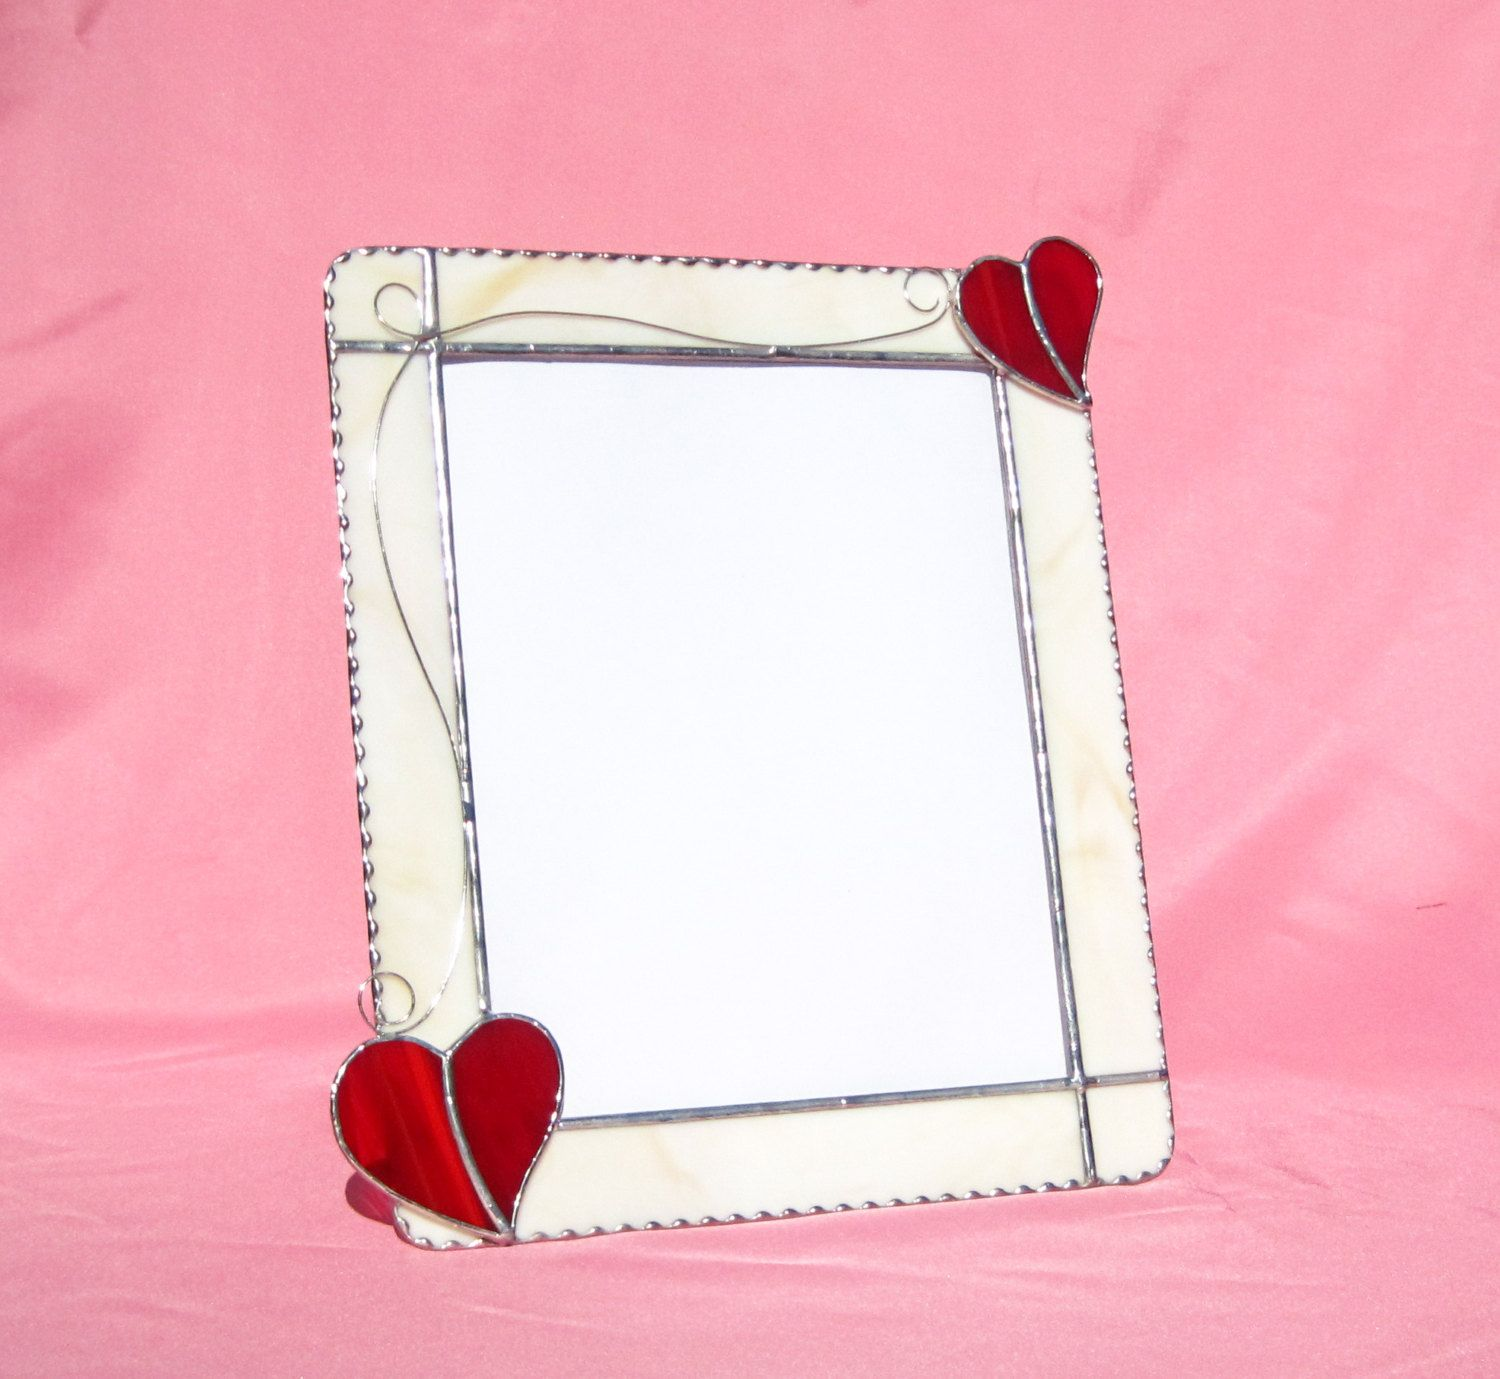 love me tender frame 8 x 10 stained glass frame picture frame valentines day picture frame glass valentine frame valentine heart frame